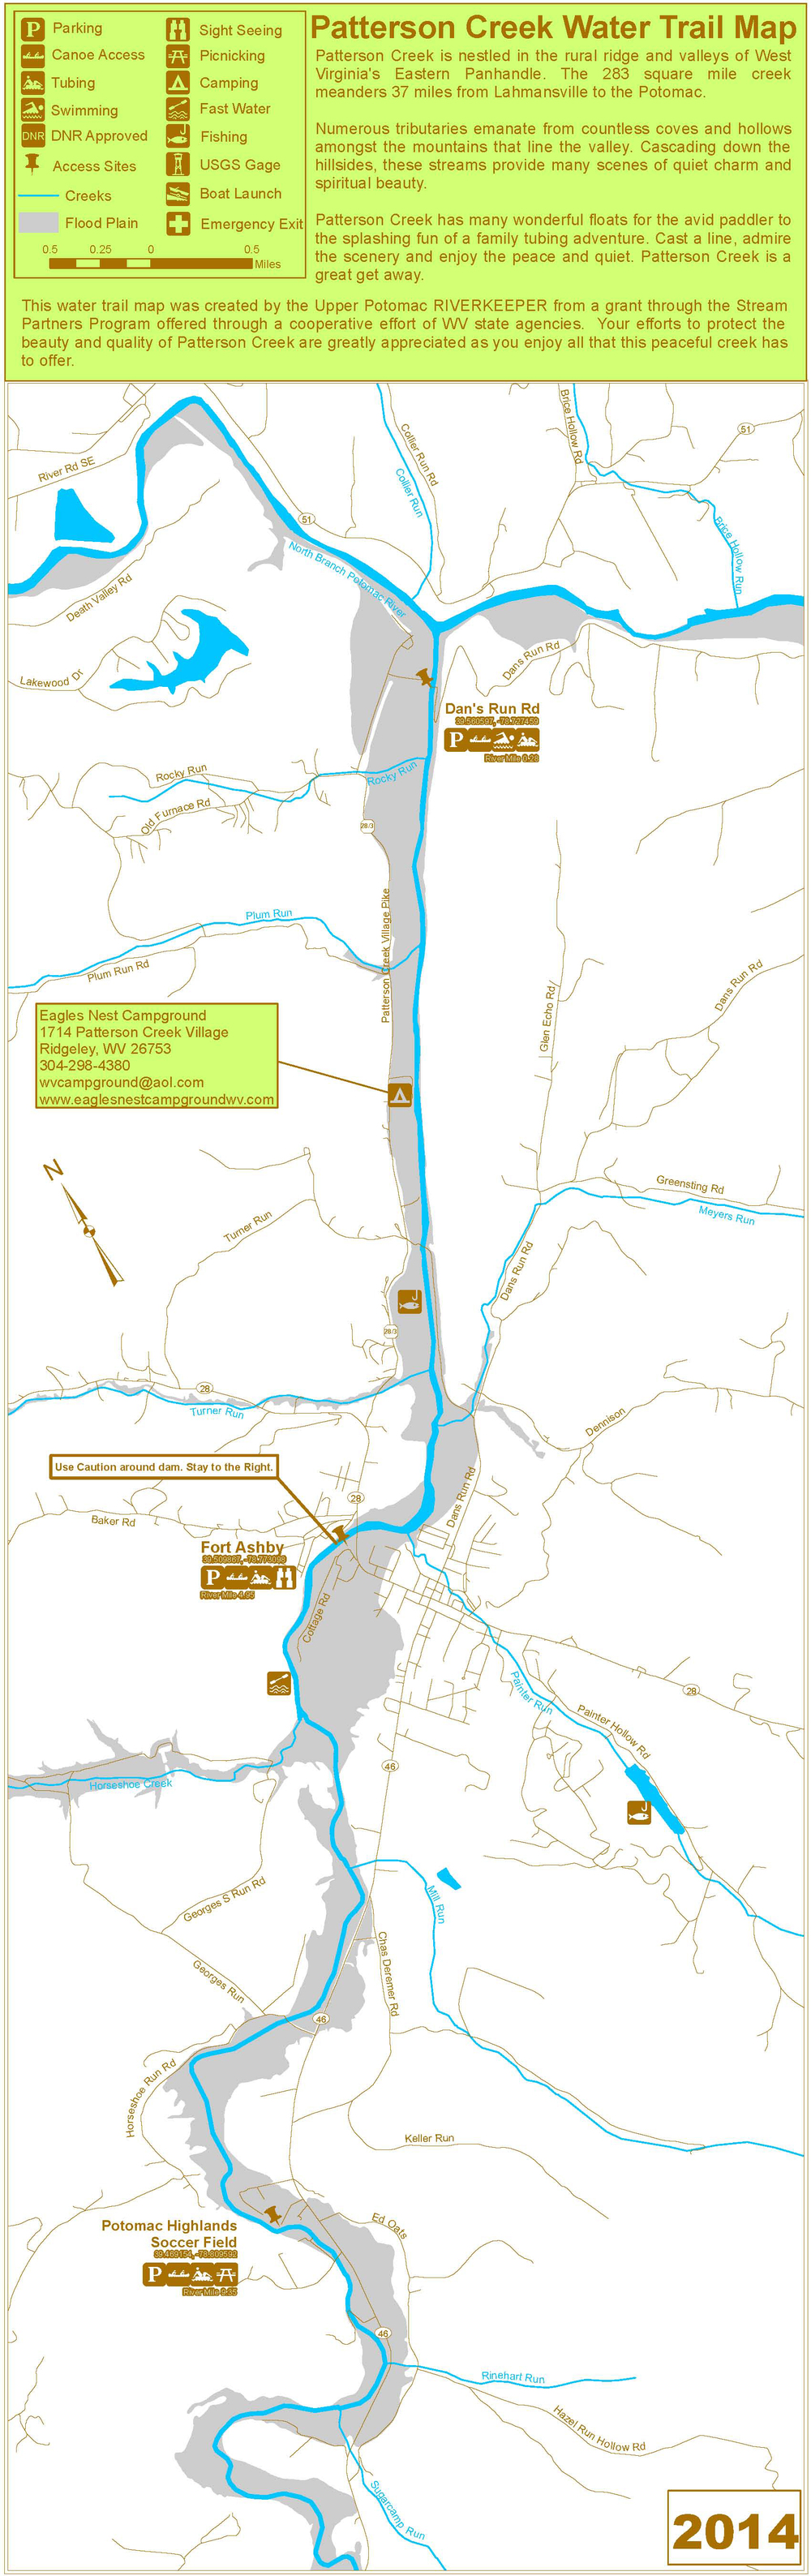 Patterson Creek water trail map front page.jpg